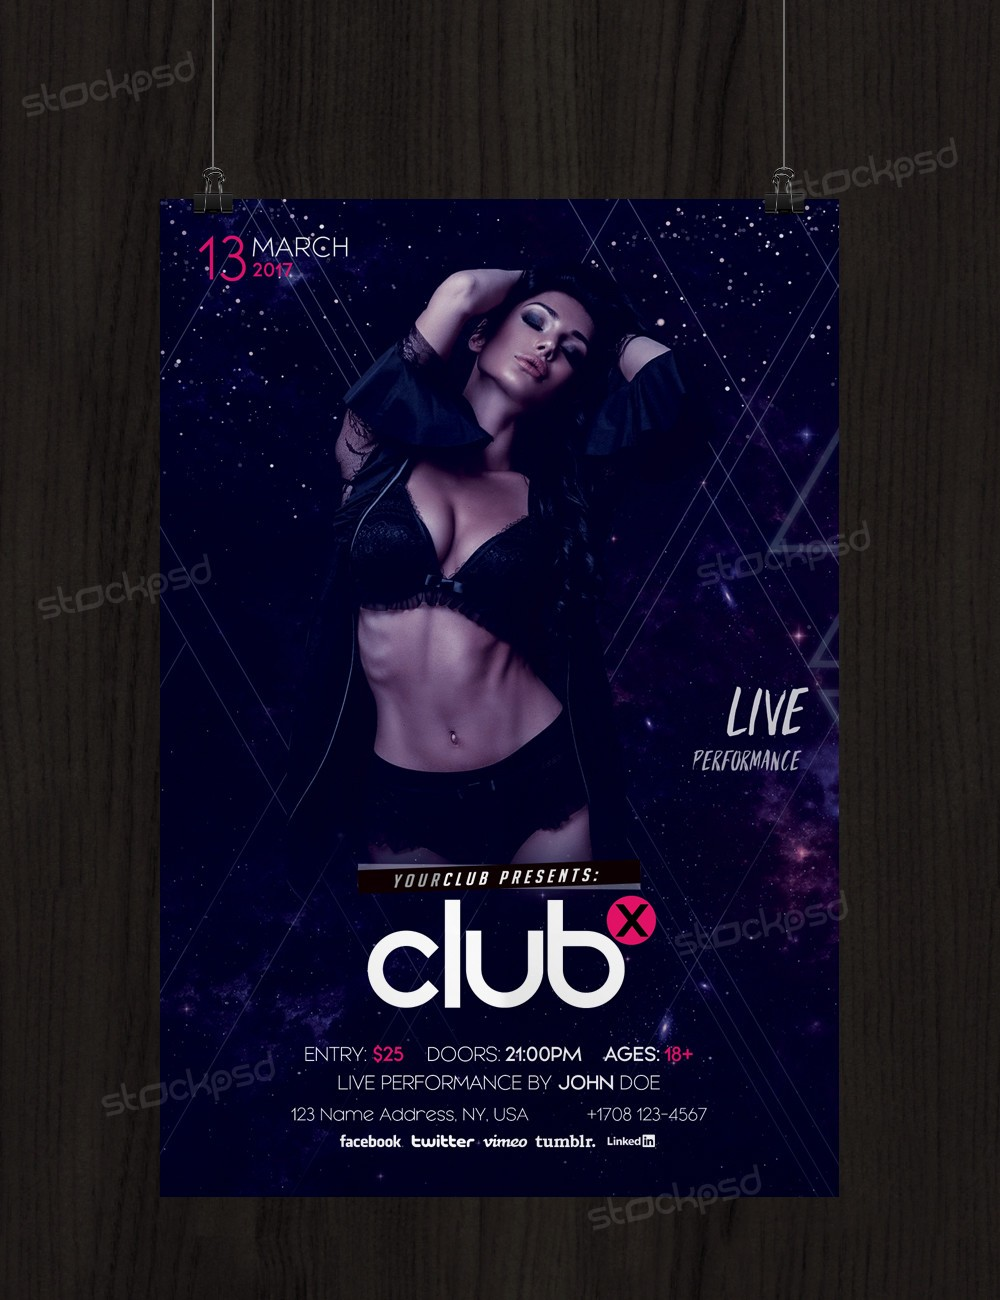 Club X - Download Free PSD Flyer Template - Stockpsd.net